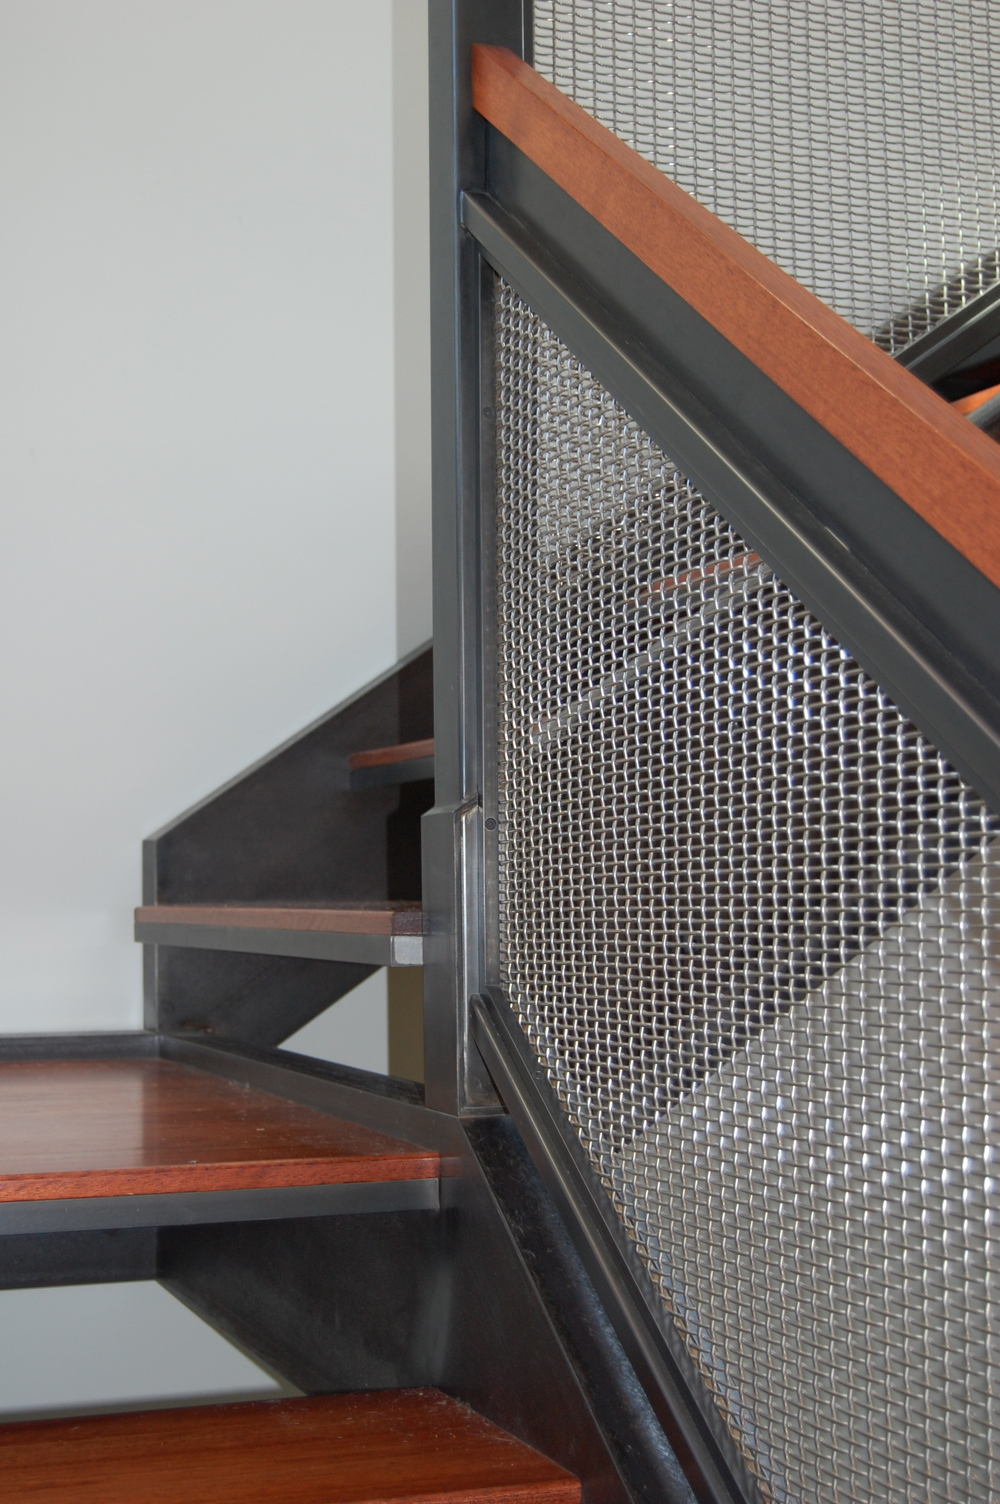 Blackened steel railing with stainless woven wire mesh.  Designed by Formed Objects